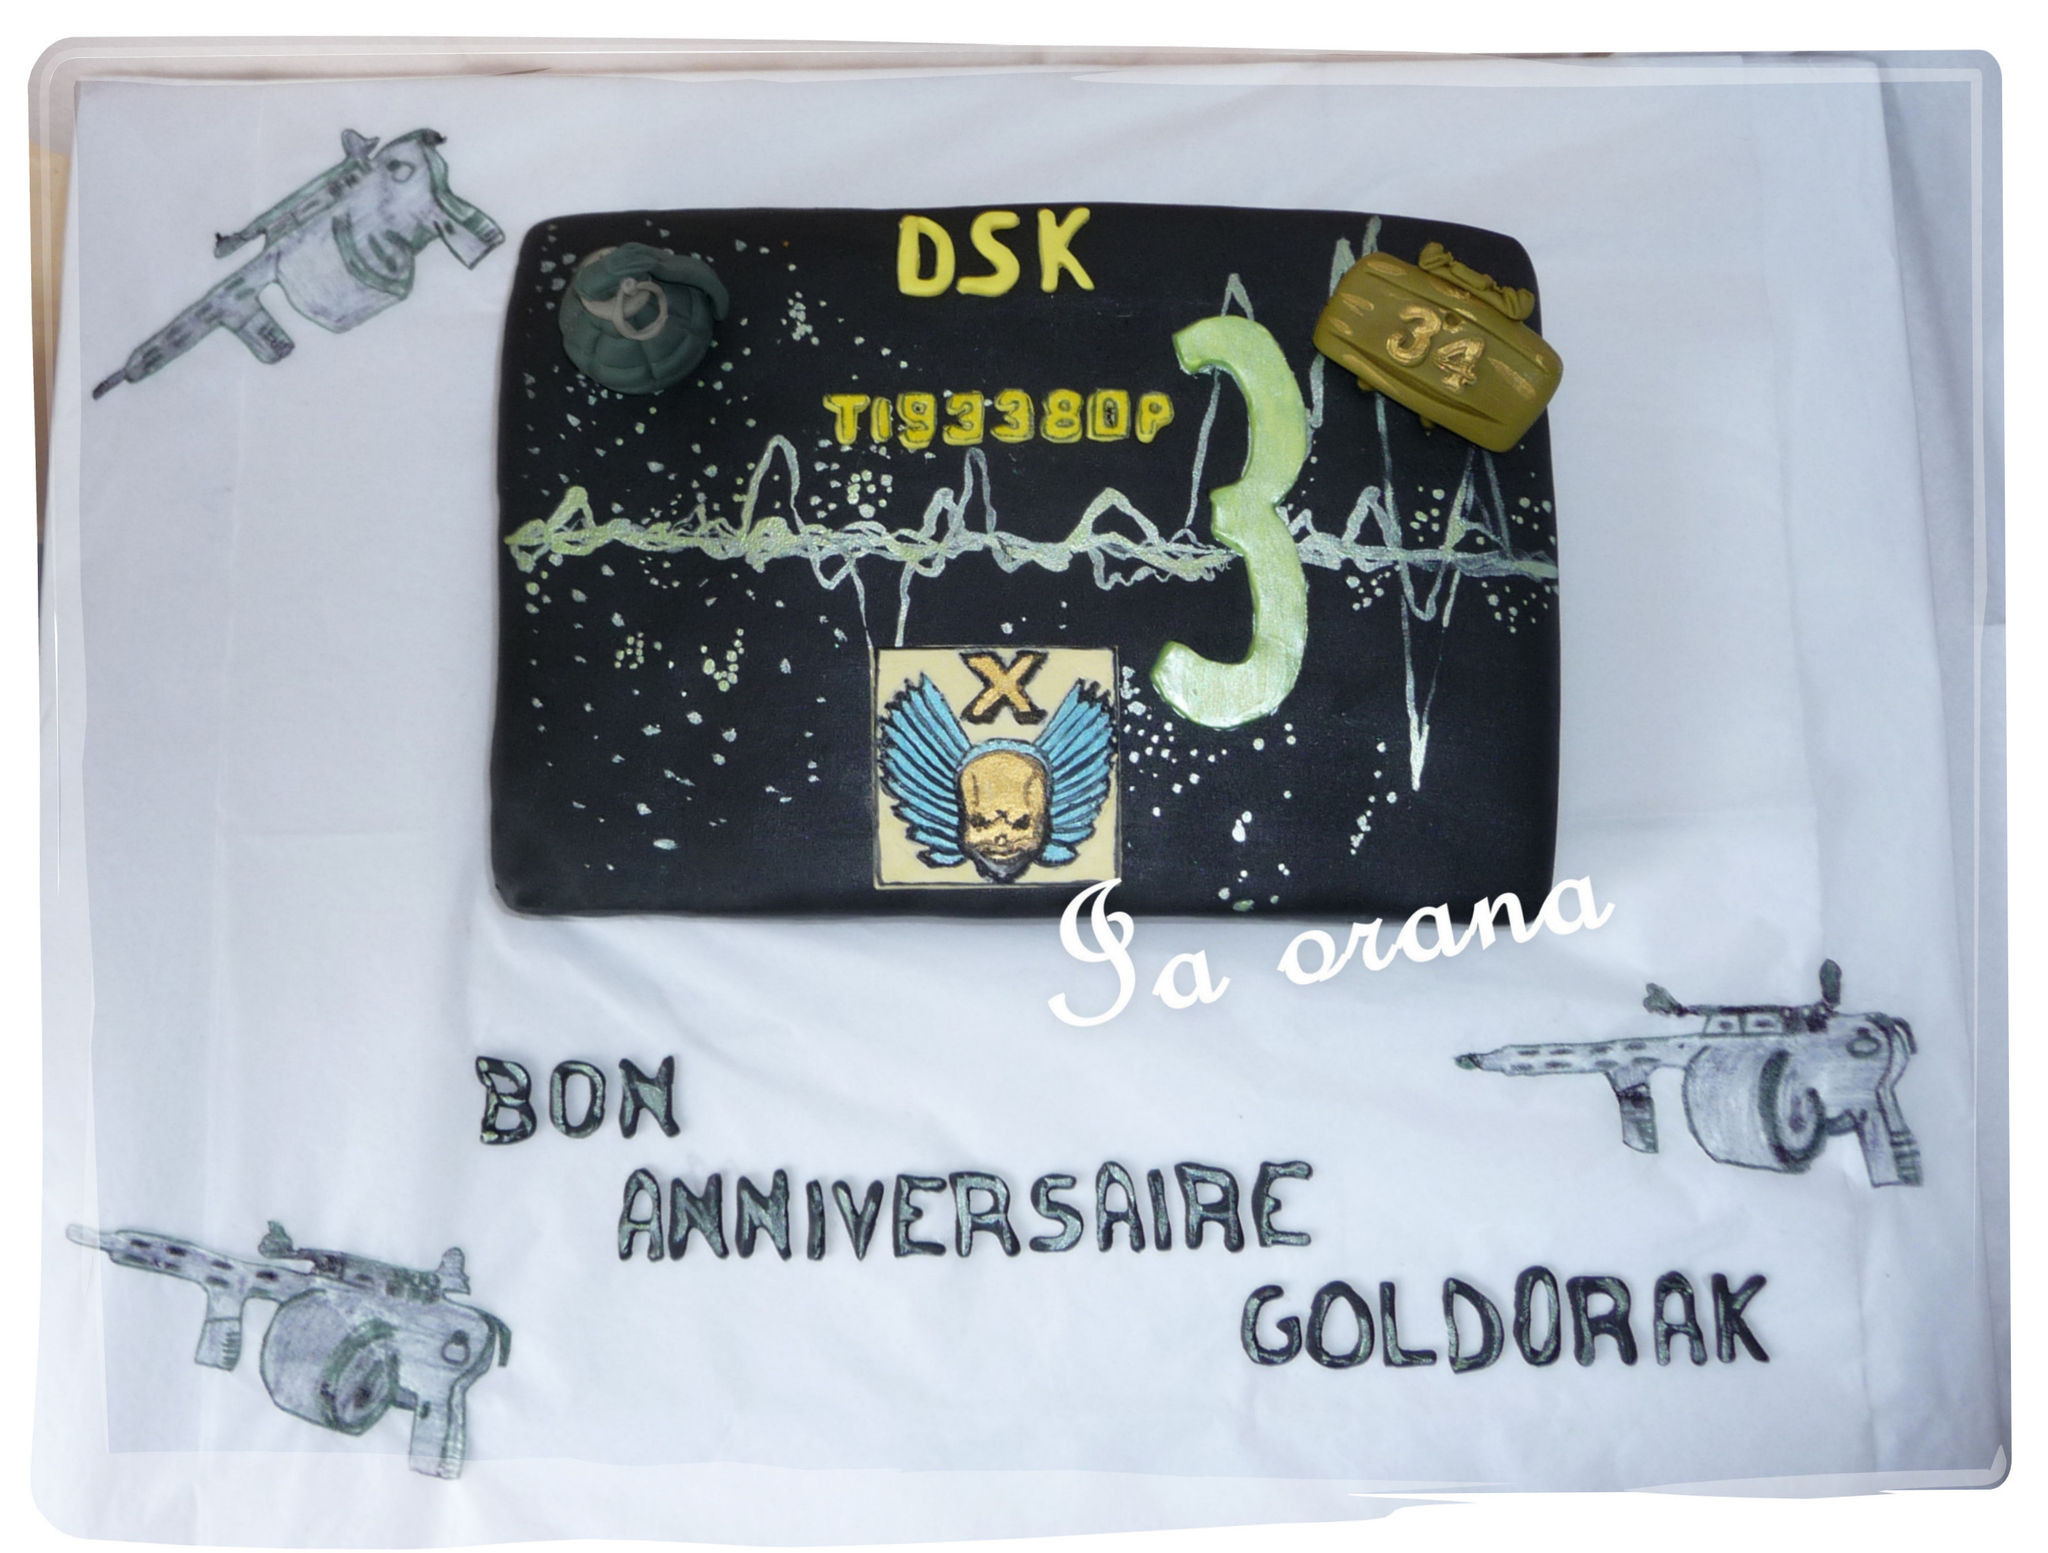 Gâteau Call of Duty/Call of Duty cake